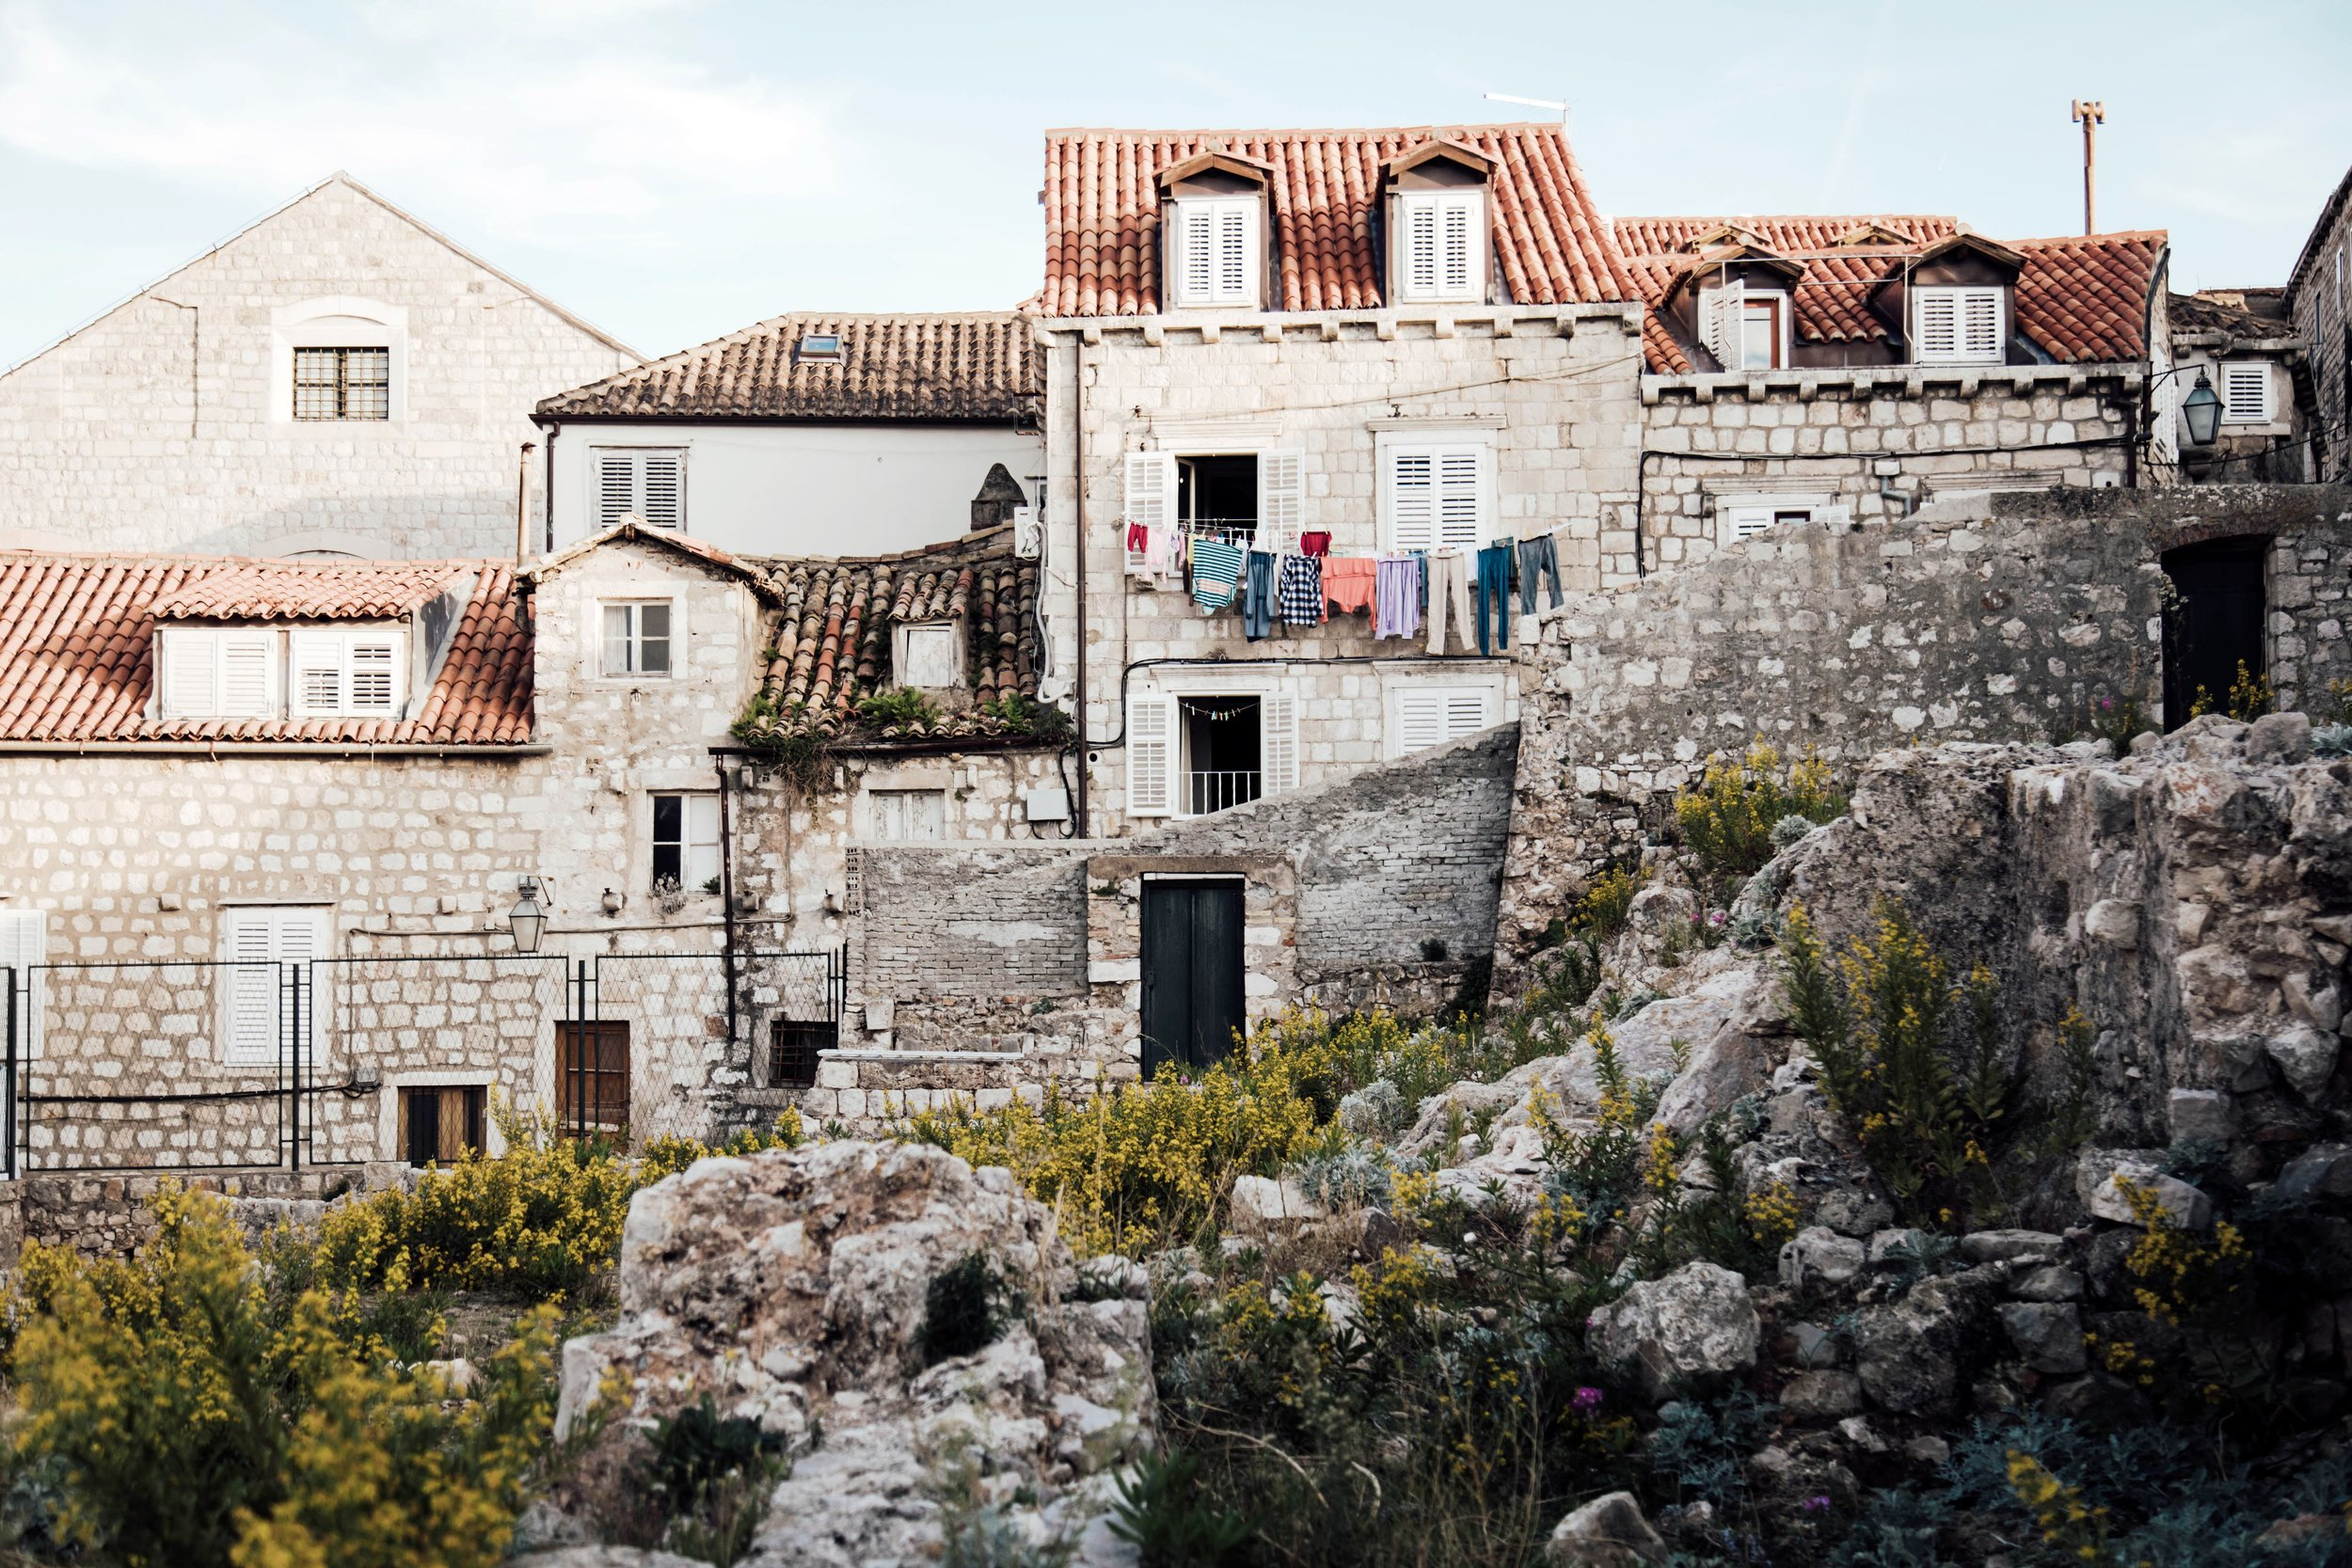 Travel_Photography_1_Dubrovnik-Croatia (64)-min.jpg